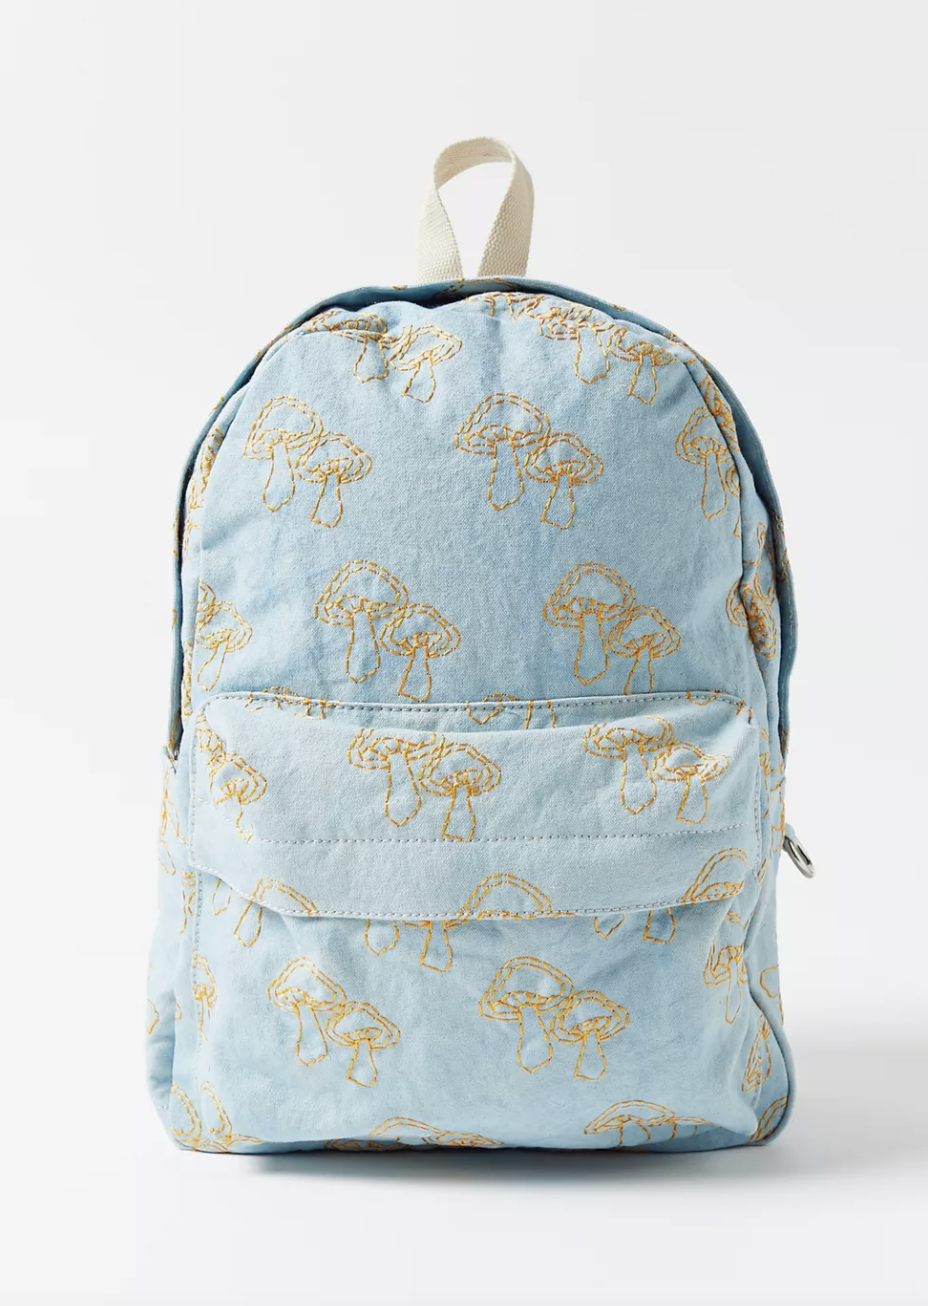 The best backpacks for middle & high school: UO Embroidered Icon Backpack (Photo via Urban Outfitters)